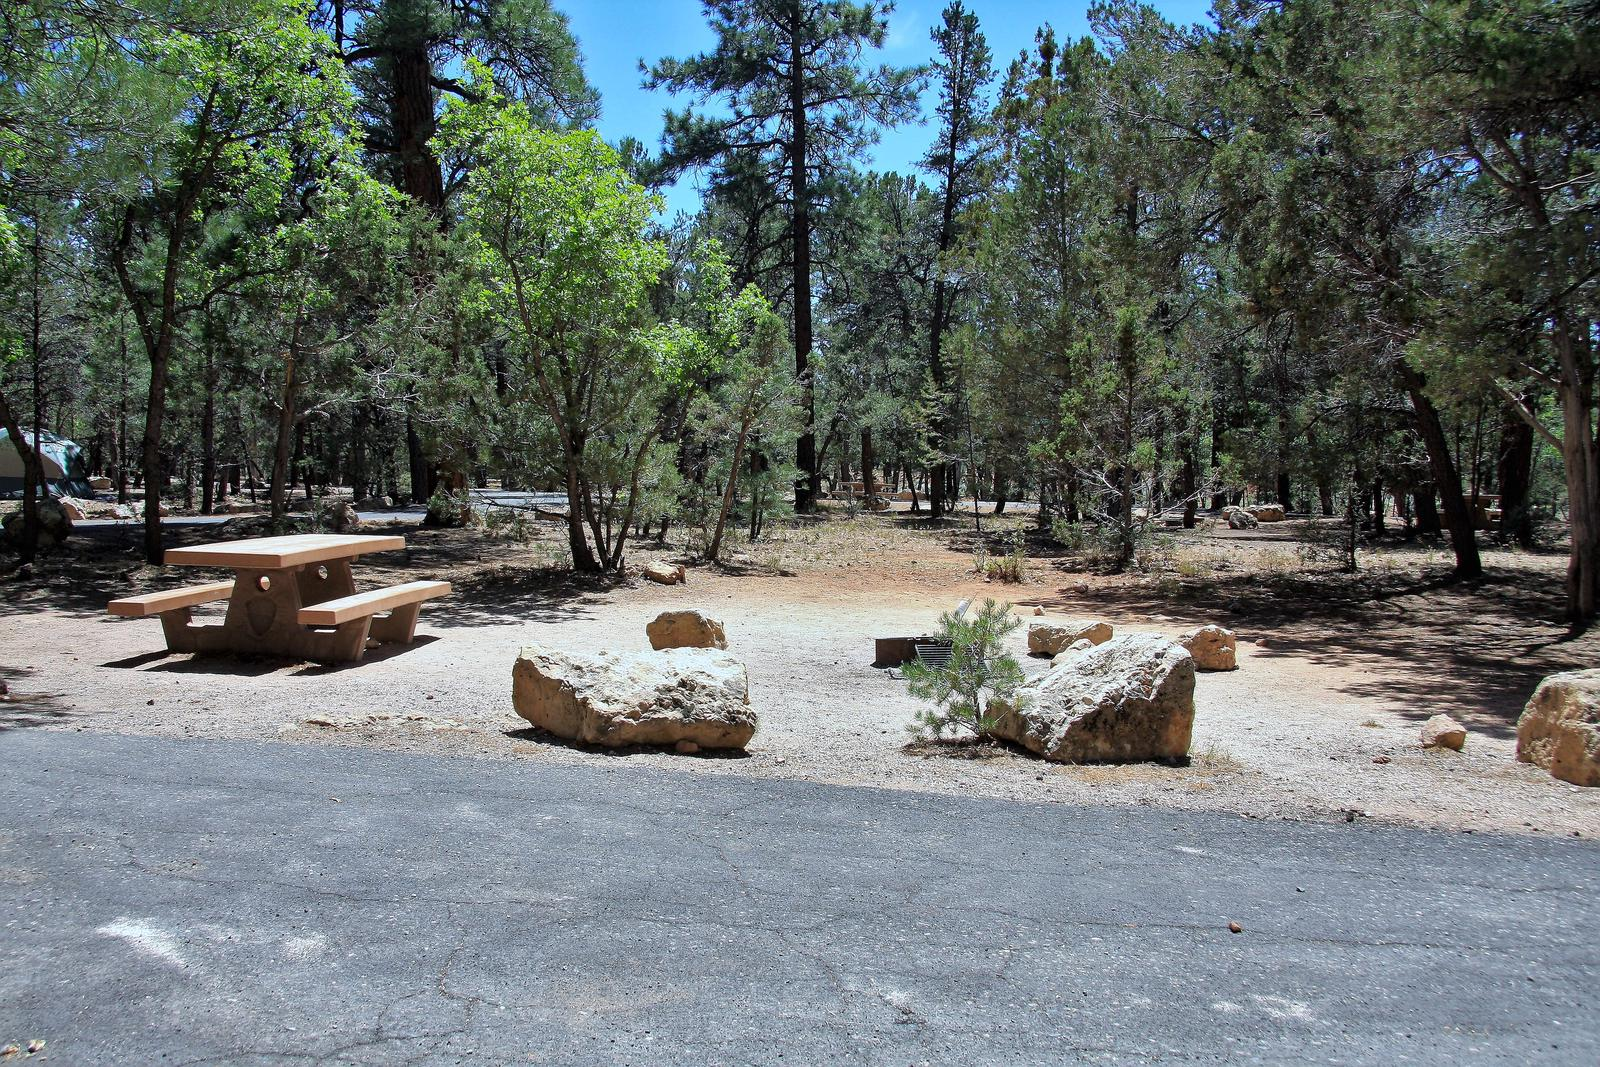 Parking spot, fire pit, and picnic table, Mather CampgroundThe parking spot, fire pit, and picnic table for Aspen Loop 14, Mather Campground